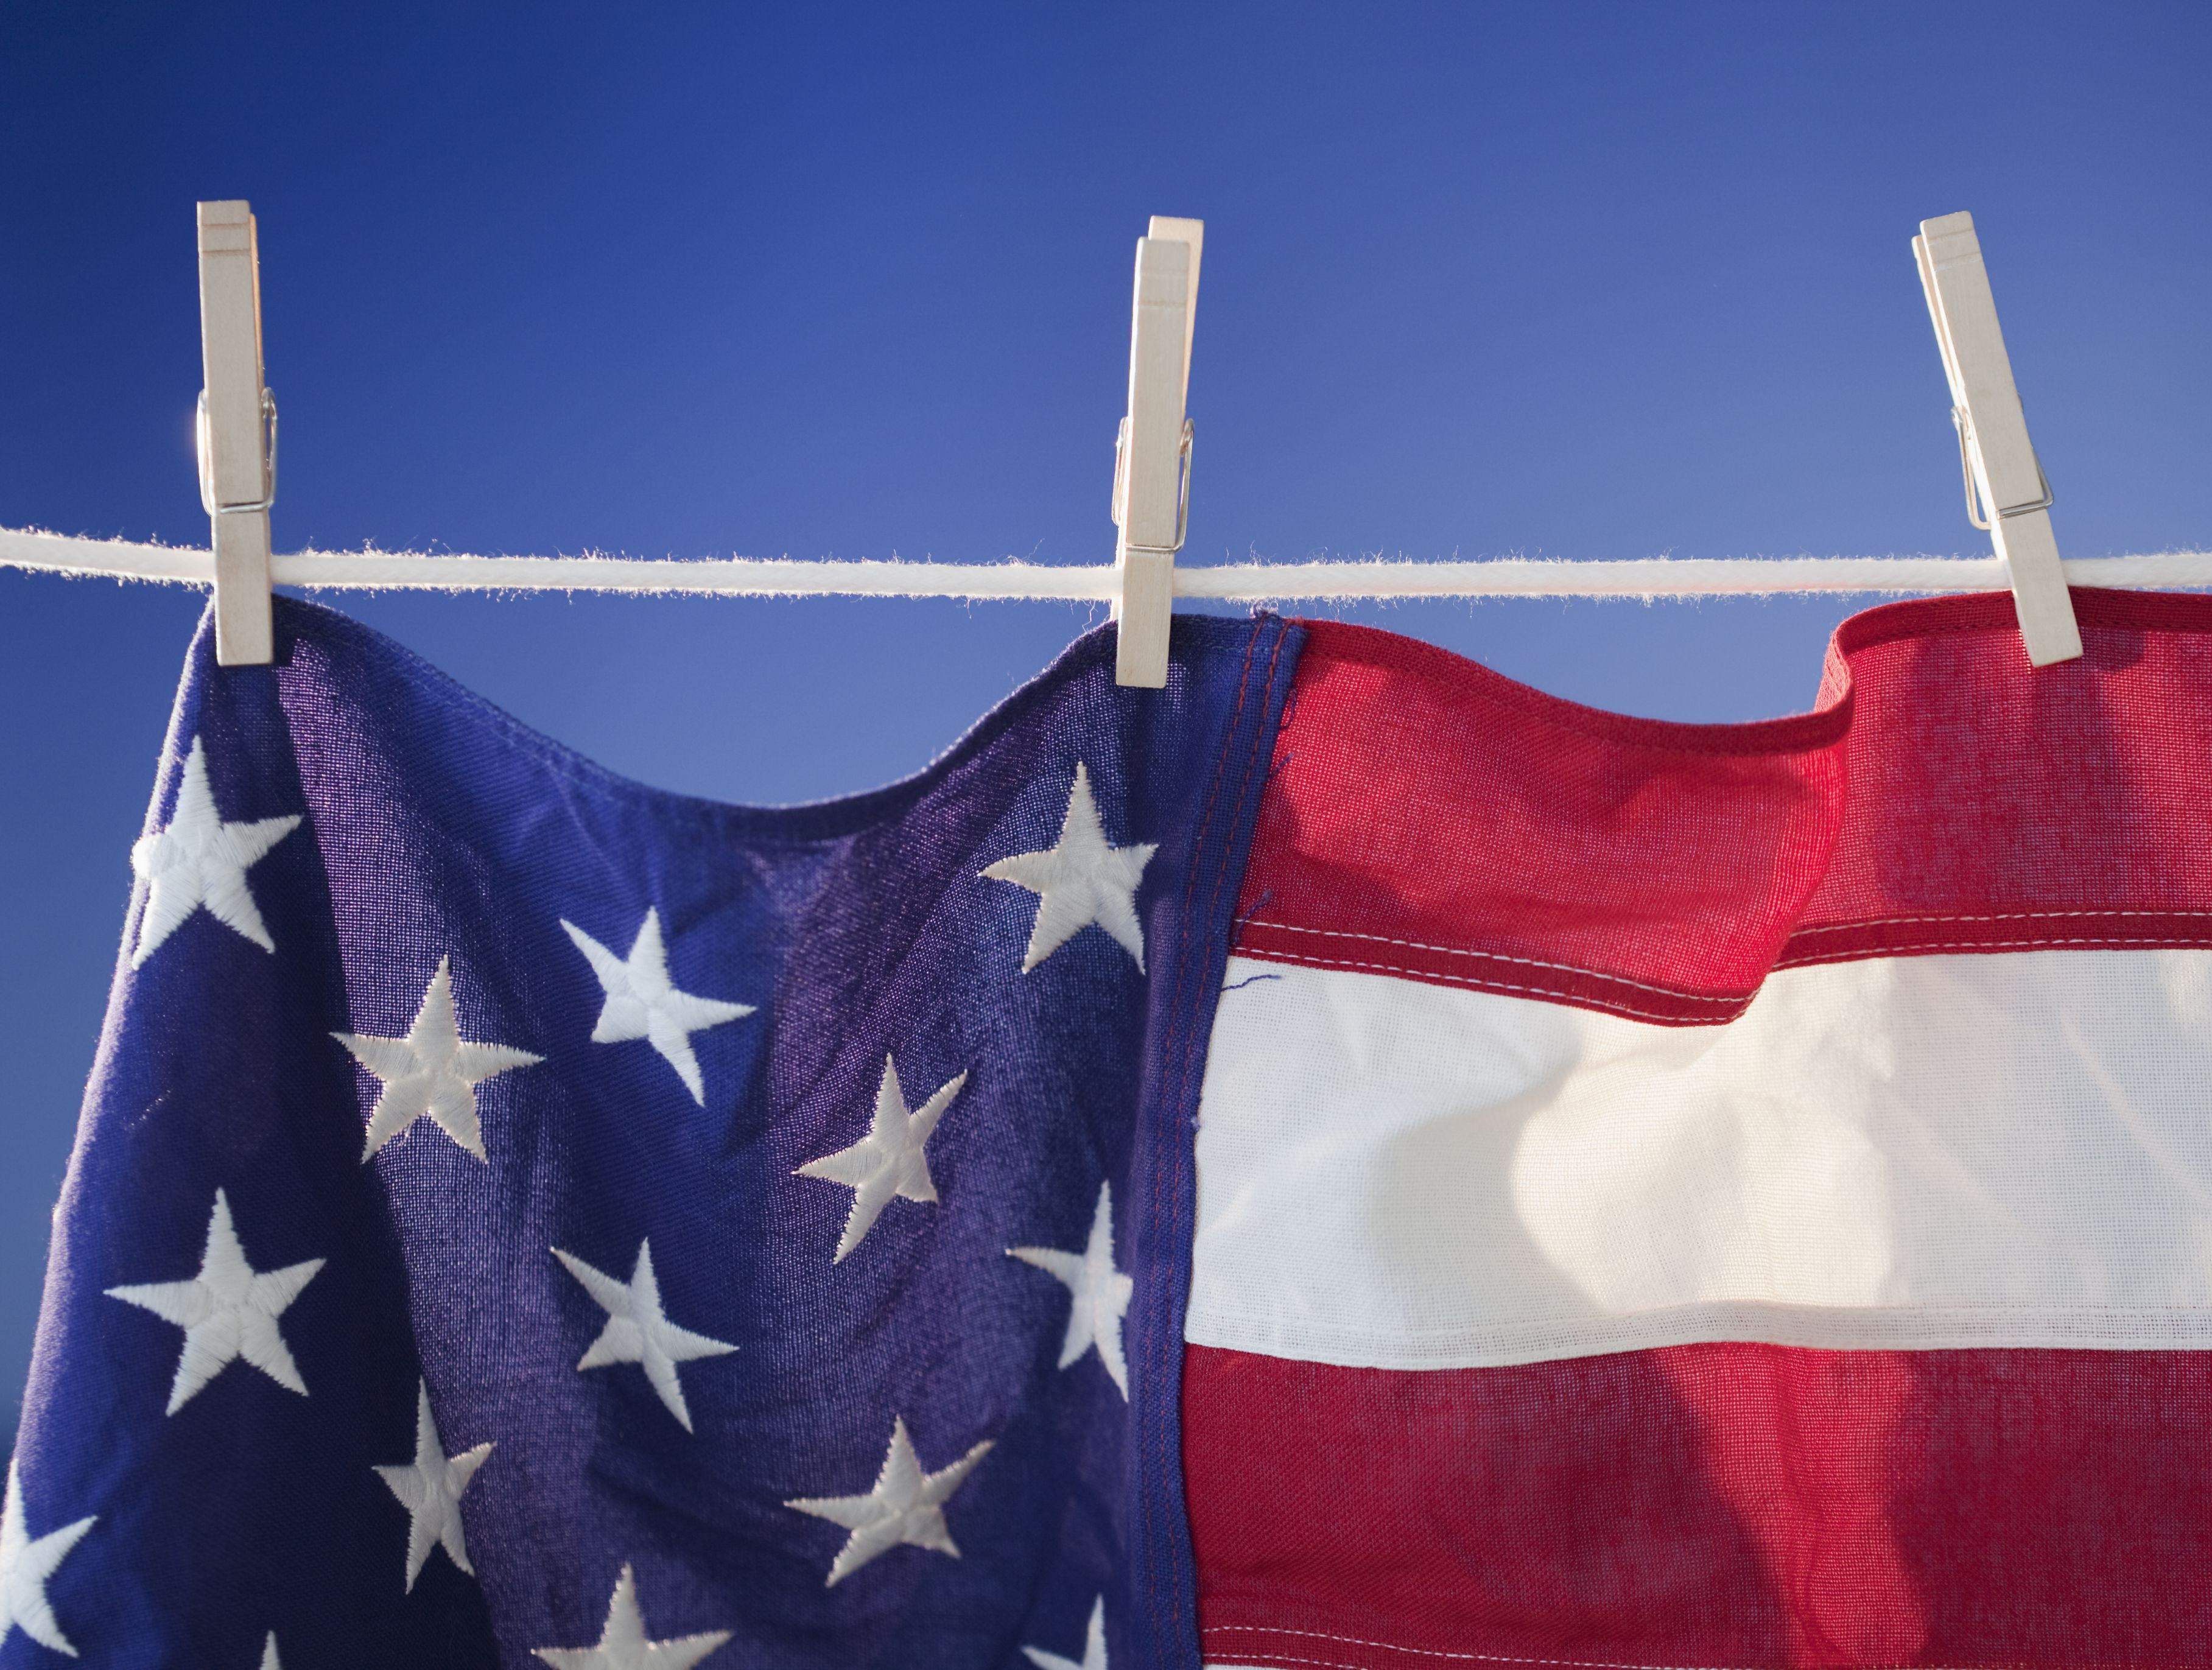 How To Wash Or Clean The American Flag